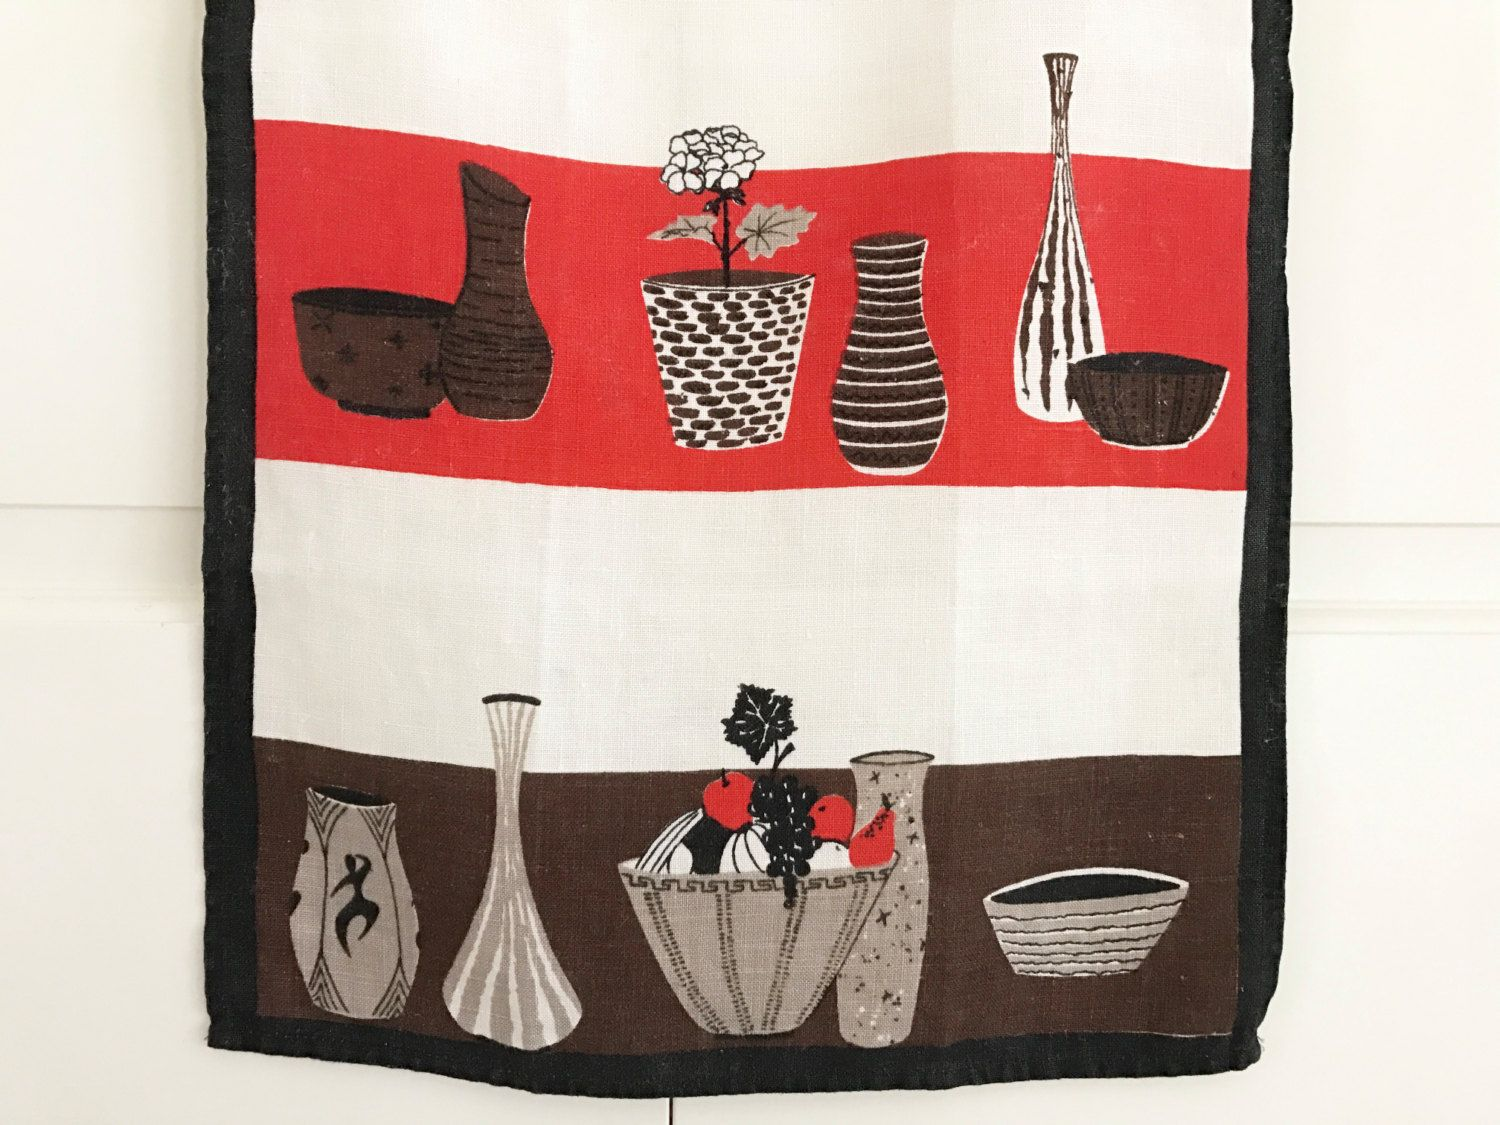 Cool Wall Hangings mid century modern, tea towel, cool ceramic vases, bowls, linen